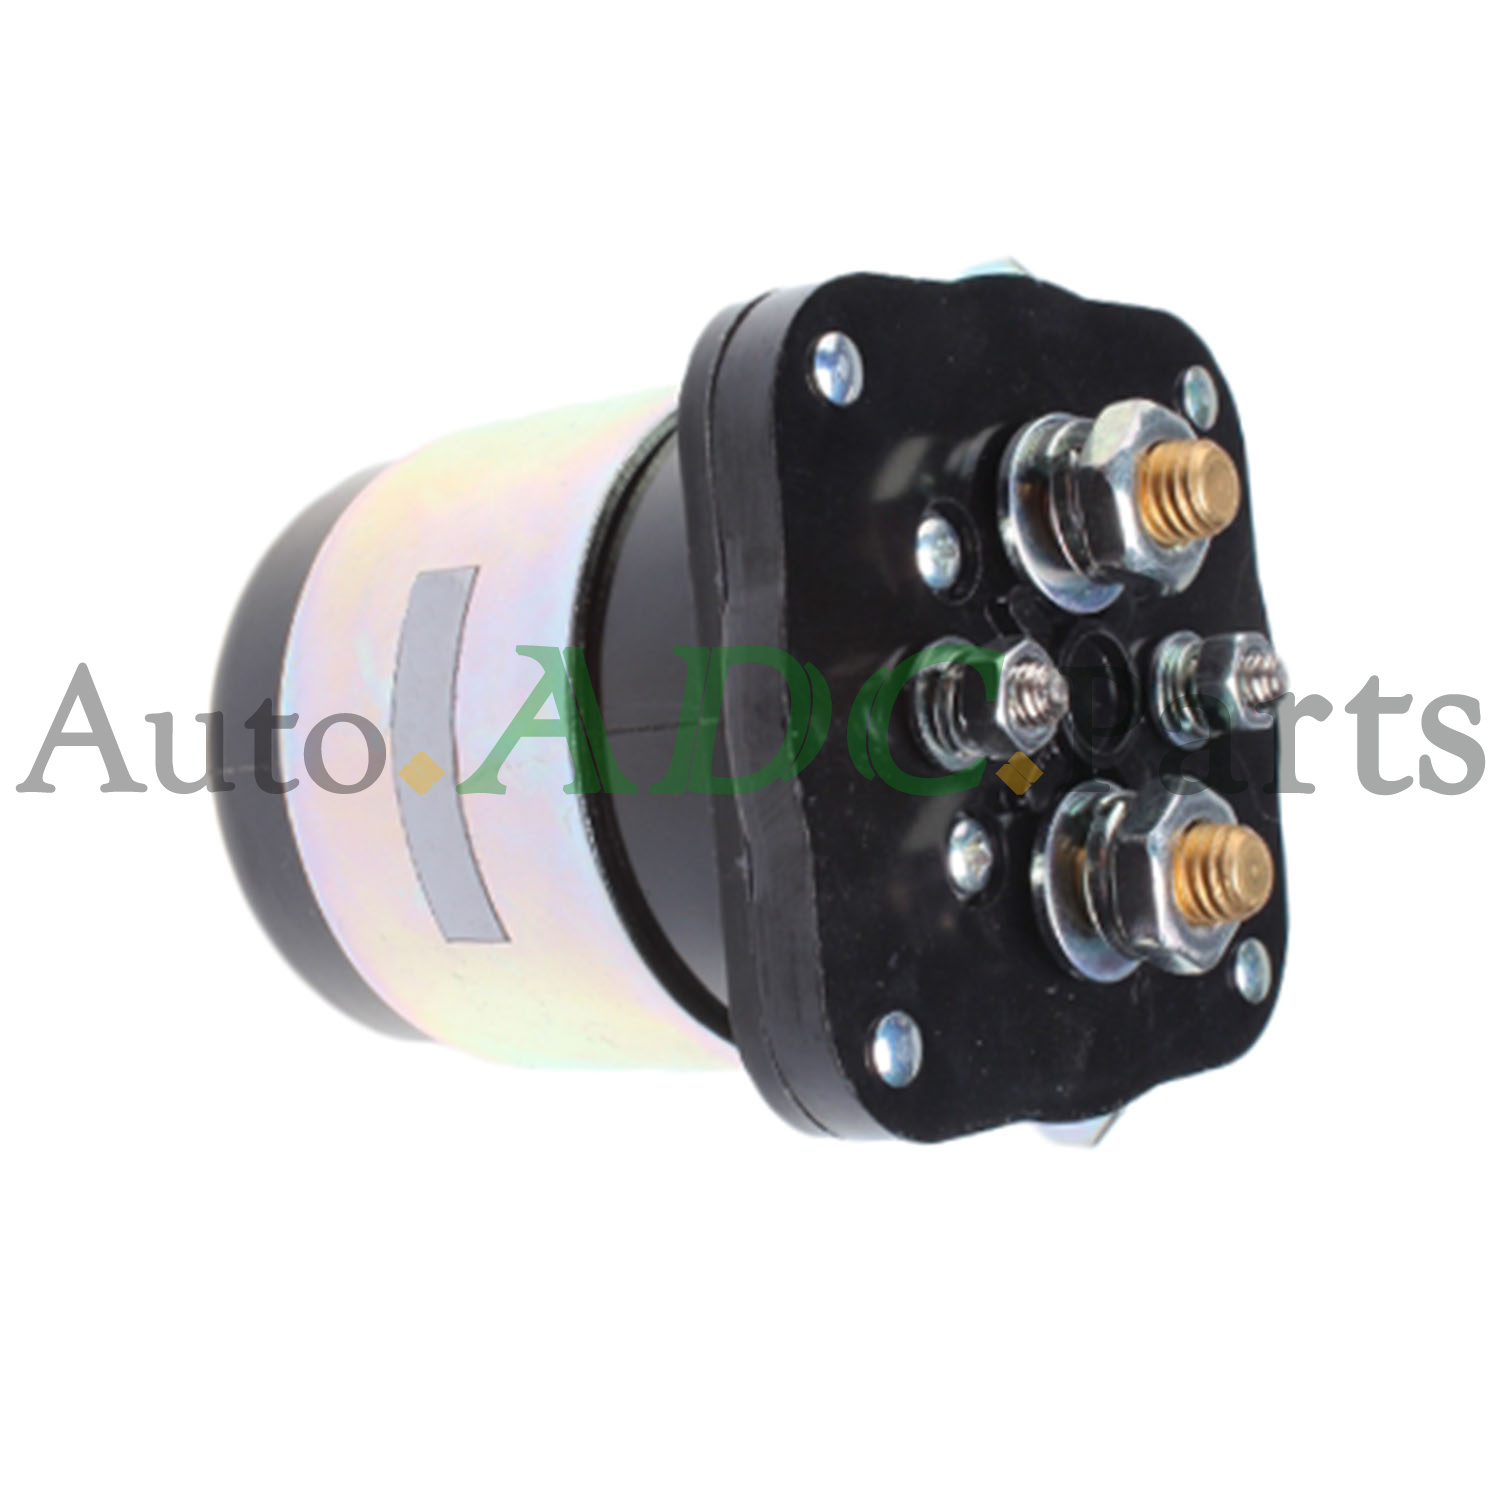 Mover Parts Contactor Solenoid Relay 010122-000 24V 200A for UPRIGHT Aerial Lift platform